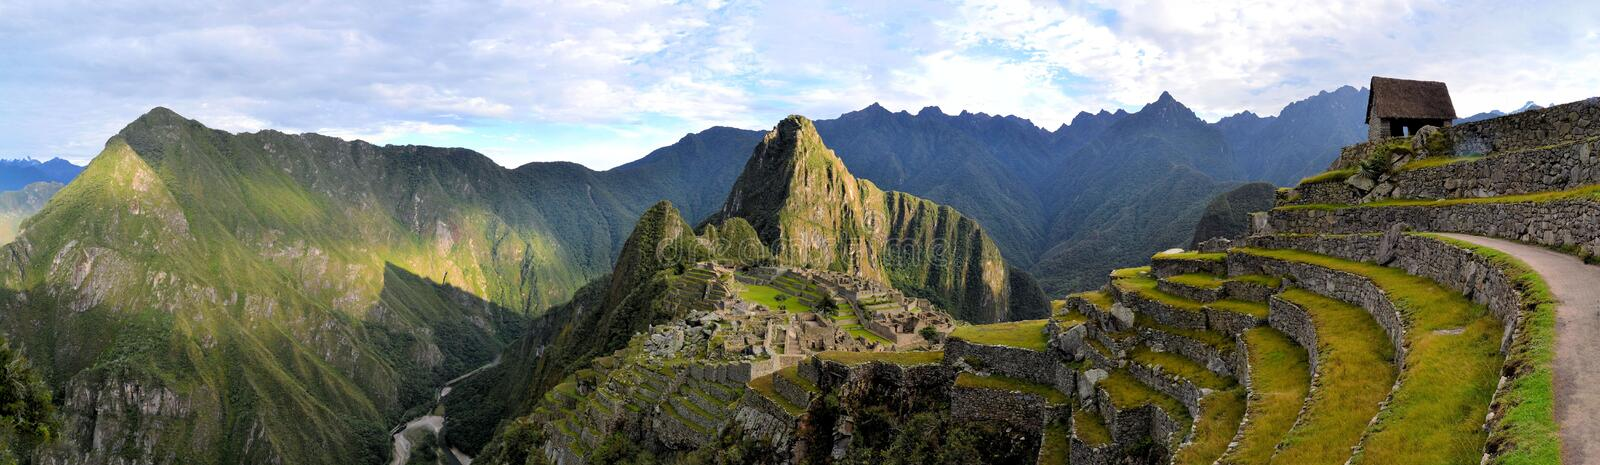 Panorama of Machu Picchu, lost Inca city in the stock photography